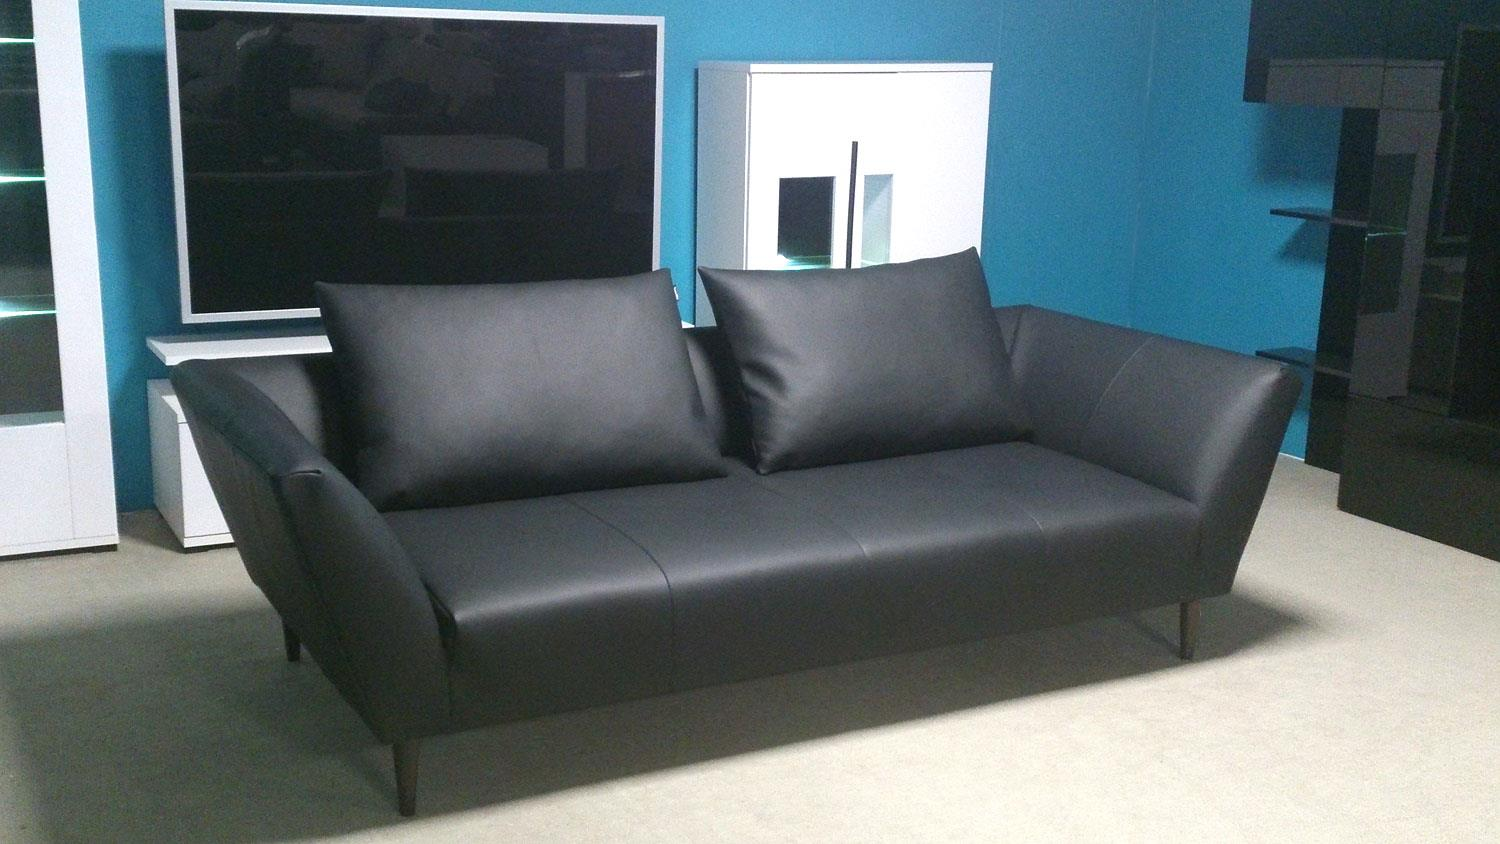 sofa freistil 176 rolf benz sofabank leder schwarz mit 2. Black Bedroom Furniture Sets. Home Design Ideas